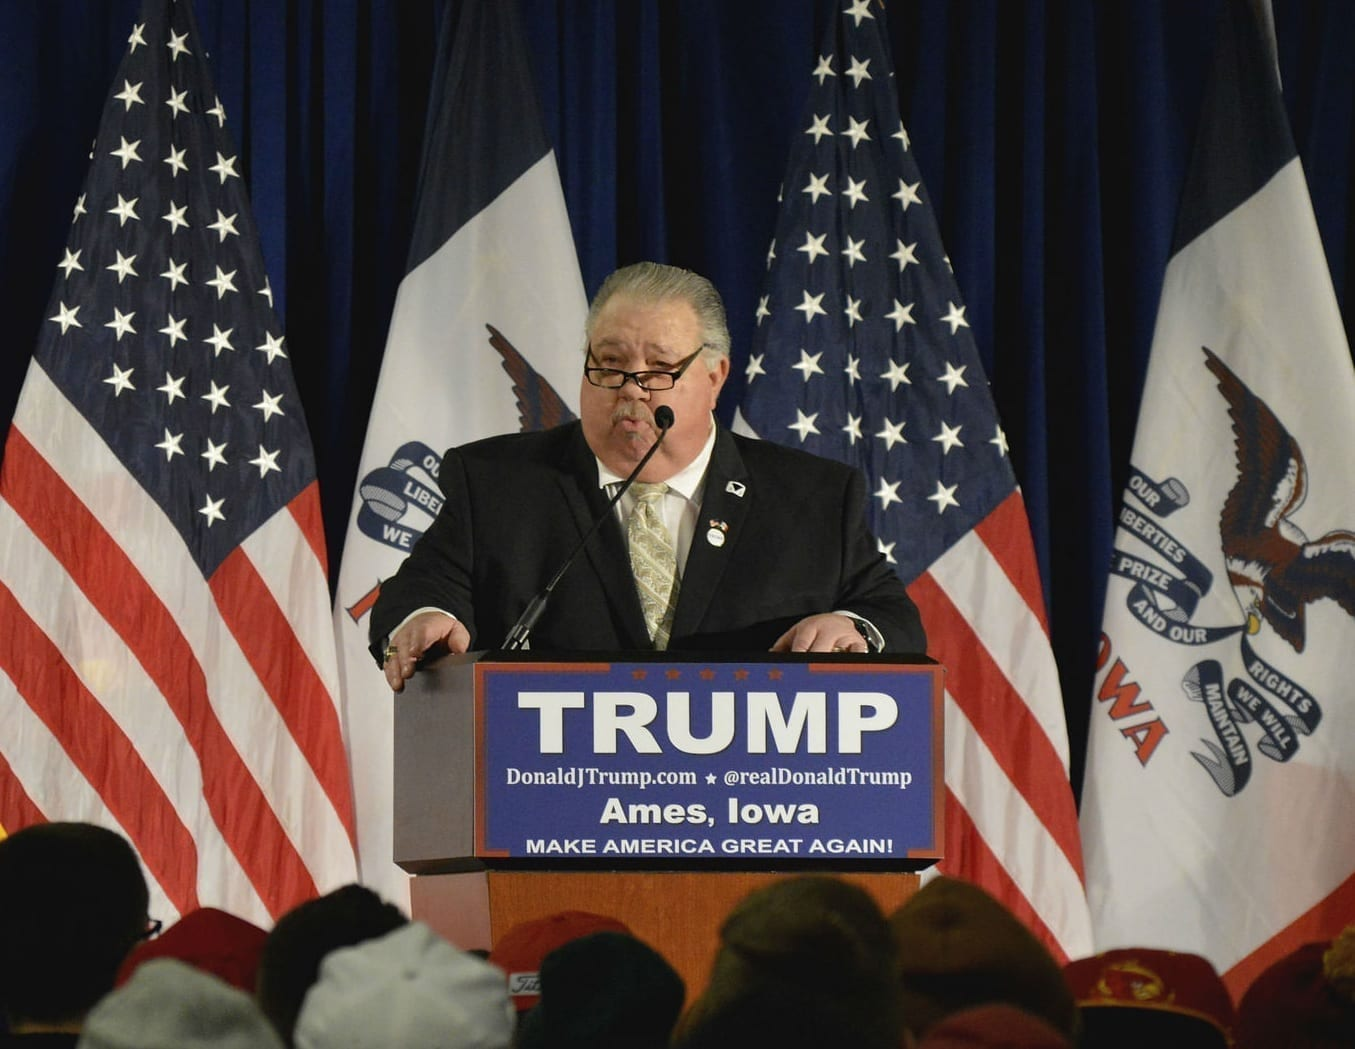 Sam Clovis speaking at a Trump campaign rally in Ames, Iowa.